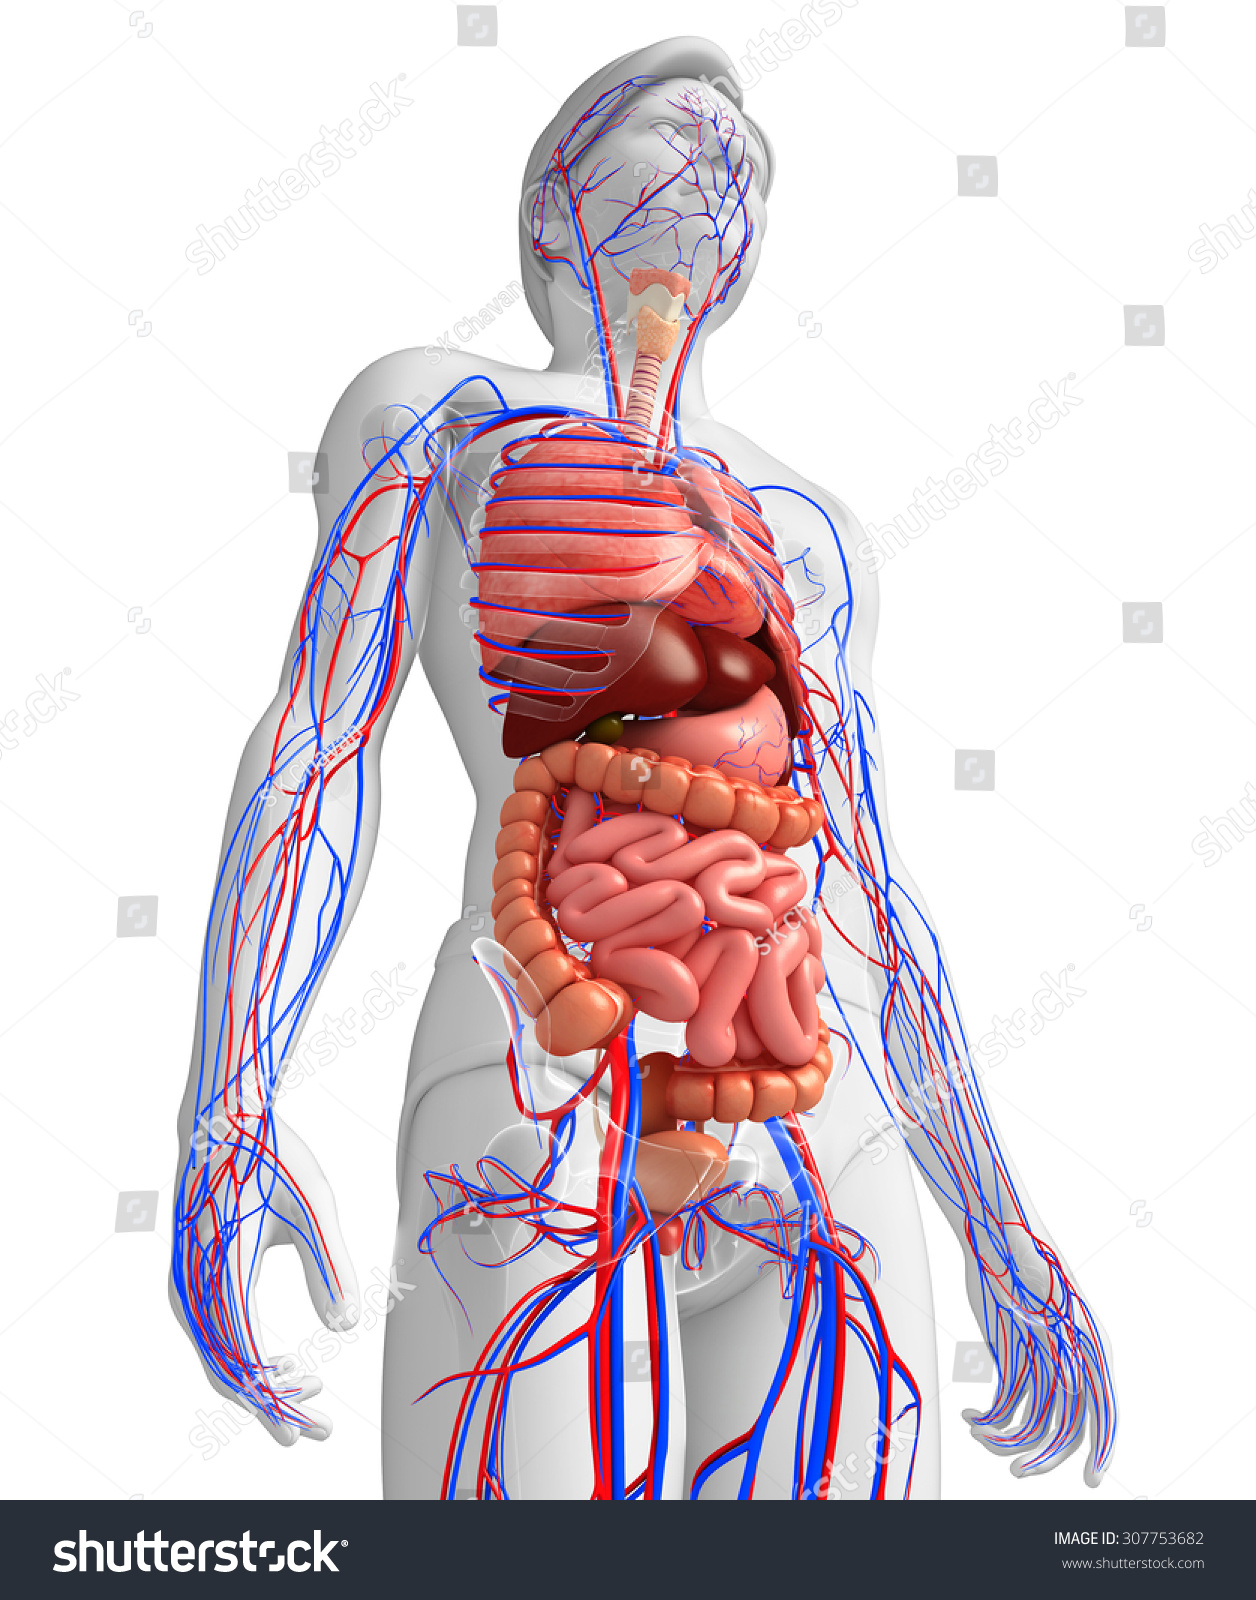 Digestive Circulatory System Male Body Artwork Stock Illustration